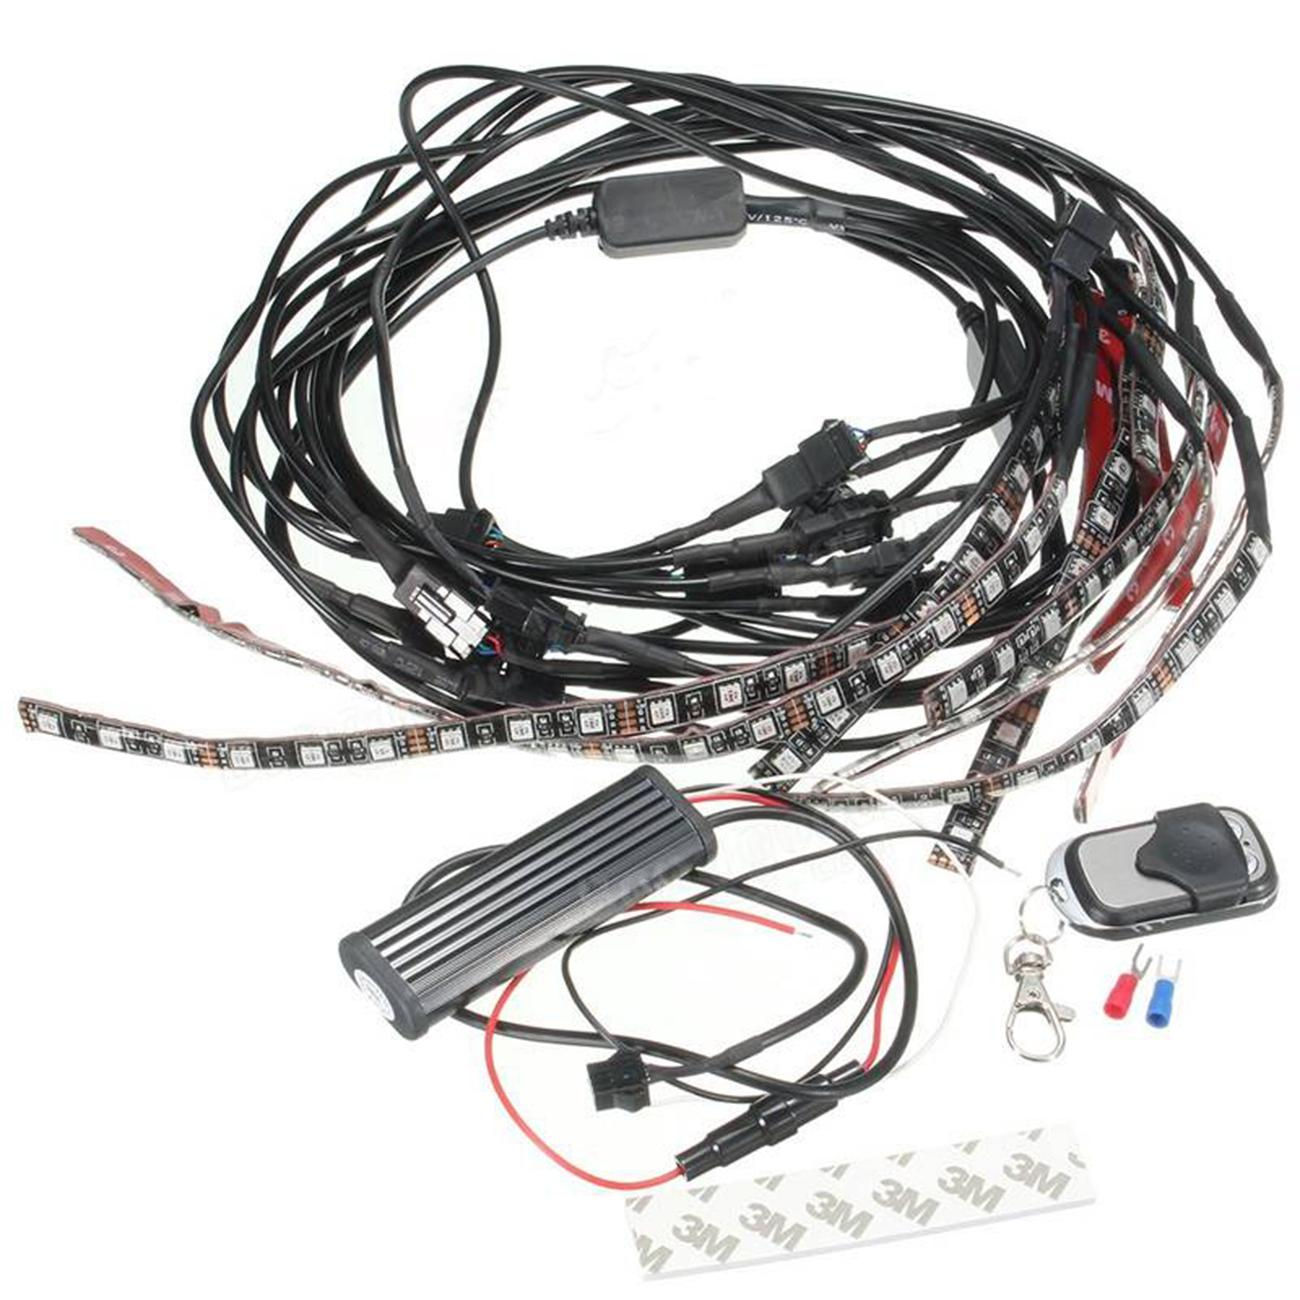 12x Motorcycle Led Neon Under Glow Light Strip Multi Color For Harley Davidson